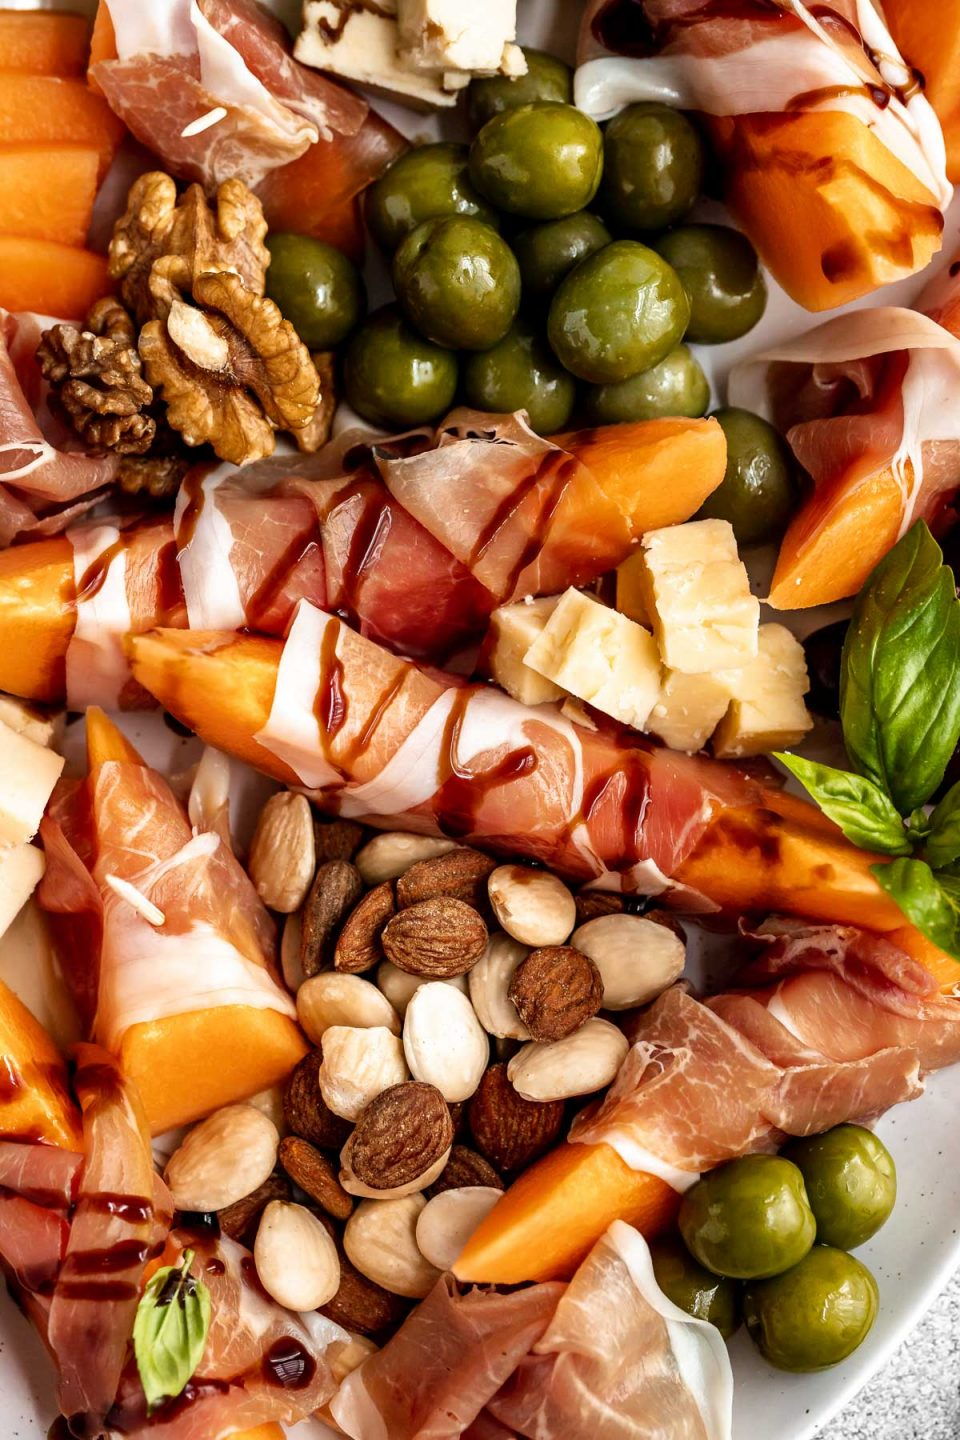 Even closer close up of prosciutto and melon cheese board! Prosciutto-Wrapped Cantaloupe on a large serving platter with olives, nuts, cheese, & fresh basil leaves. Some pieces of prosciutto-wrapped melon are drizzled with balsamic syrup.